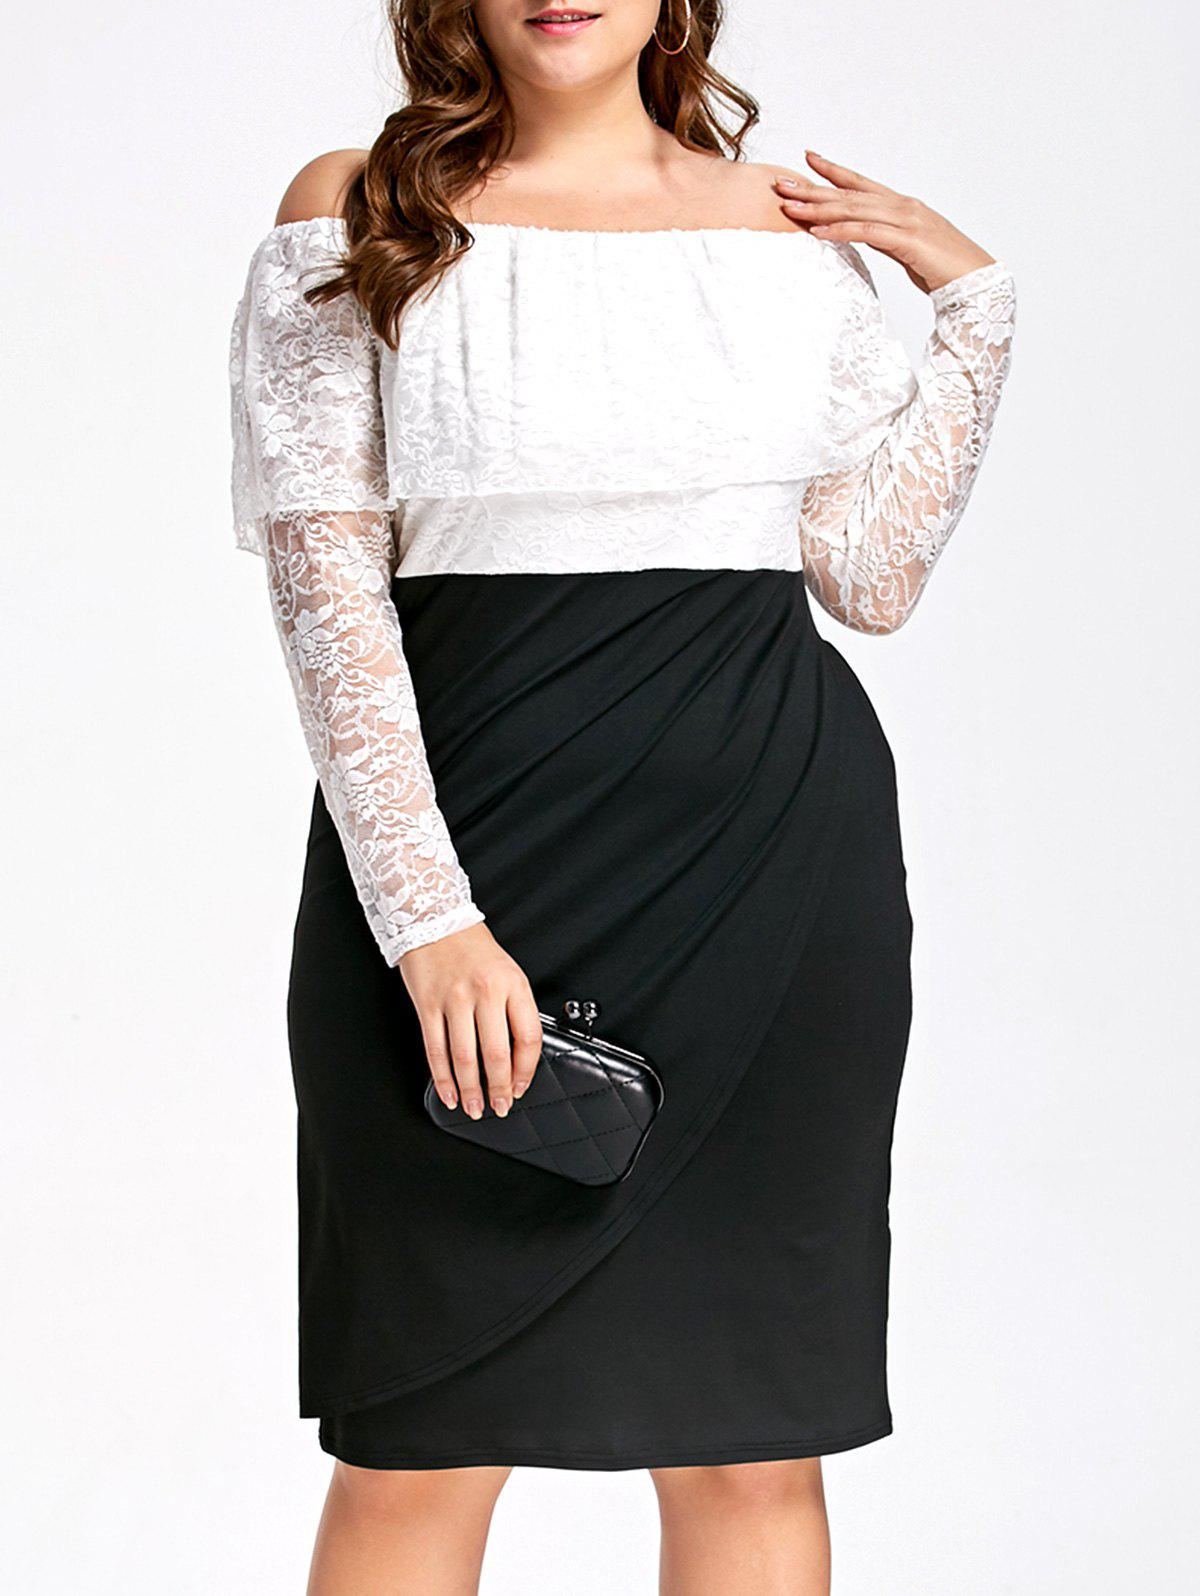 Lace Plus Size Off Shoulder Two Tone Sheath DressWOMEN<br><br>Size: 5XL; Color: WHITE AND BLACK; Style: Brief; Material: Polyester,Spandex; Silhouette: Sheath; Dresses Length: Knee-Length; Neckline: Off The Shoulder; Sleeve Length: Long Sleeves; Pattern Type: Others; With Belt: No; Season: Fall,Spring; Weight: 0.3970kg; Package Contents: 1 x Dress;